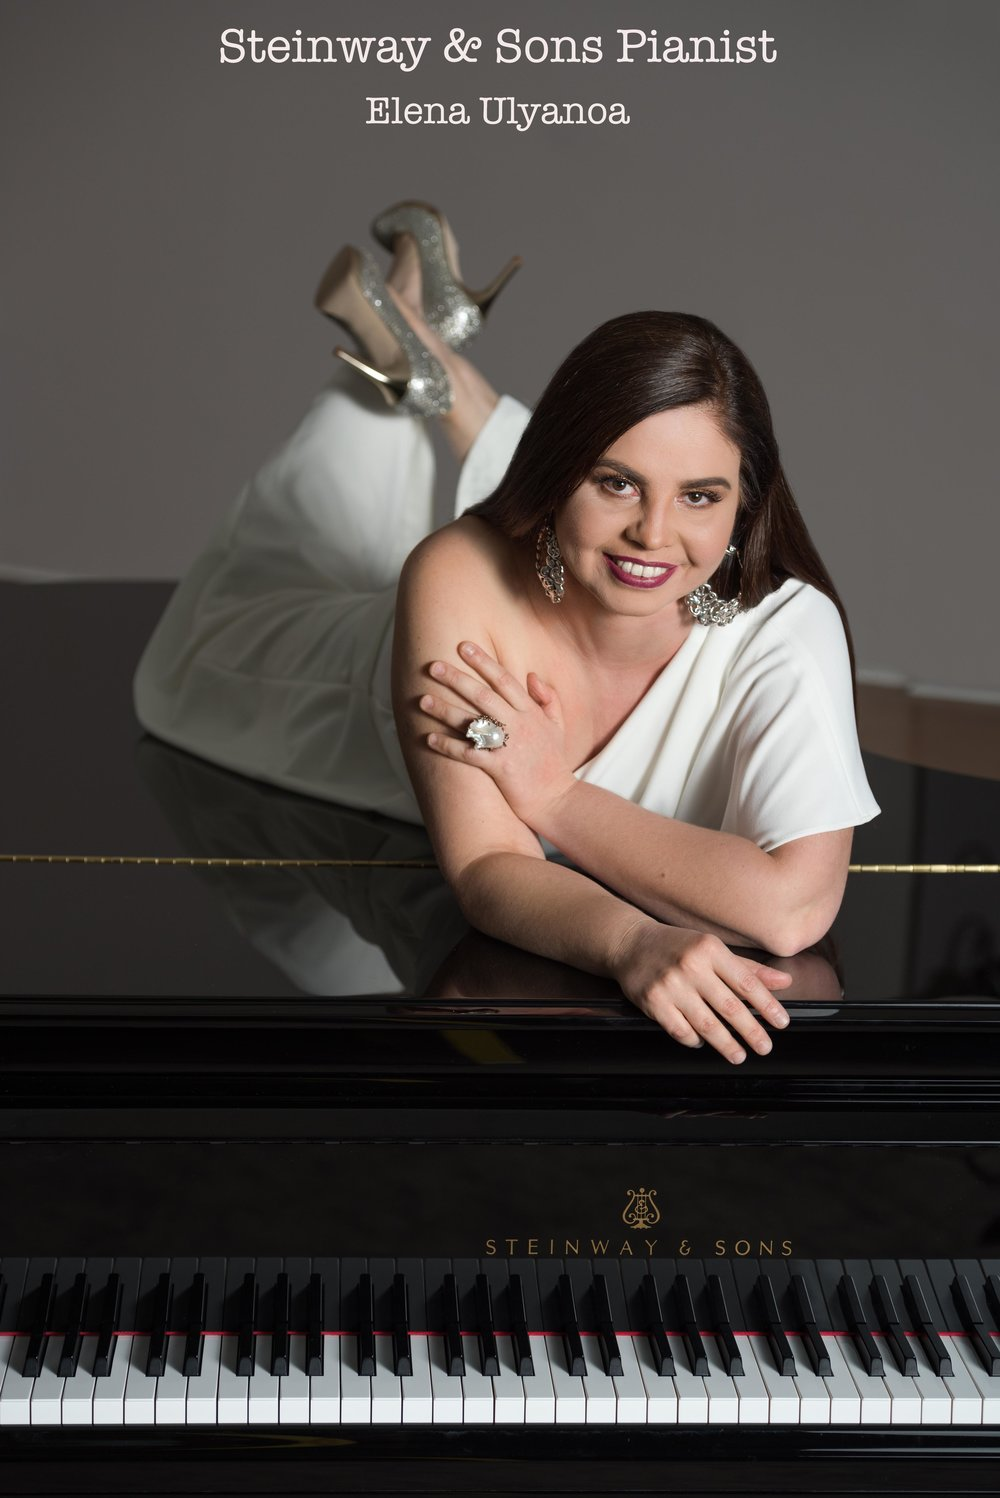 steinway pianist photo session